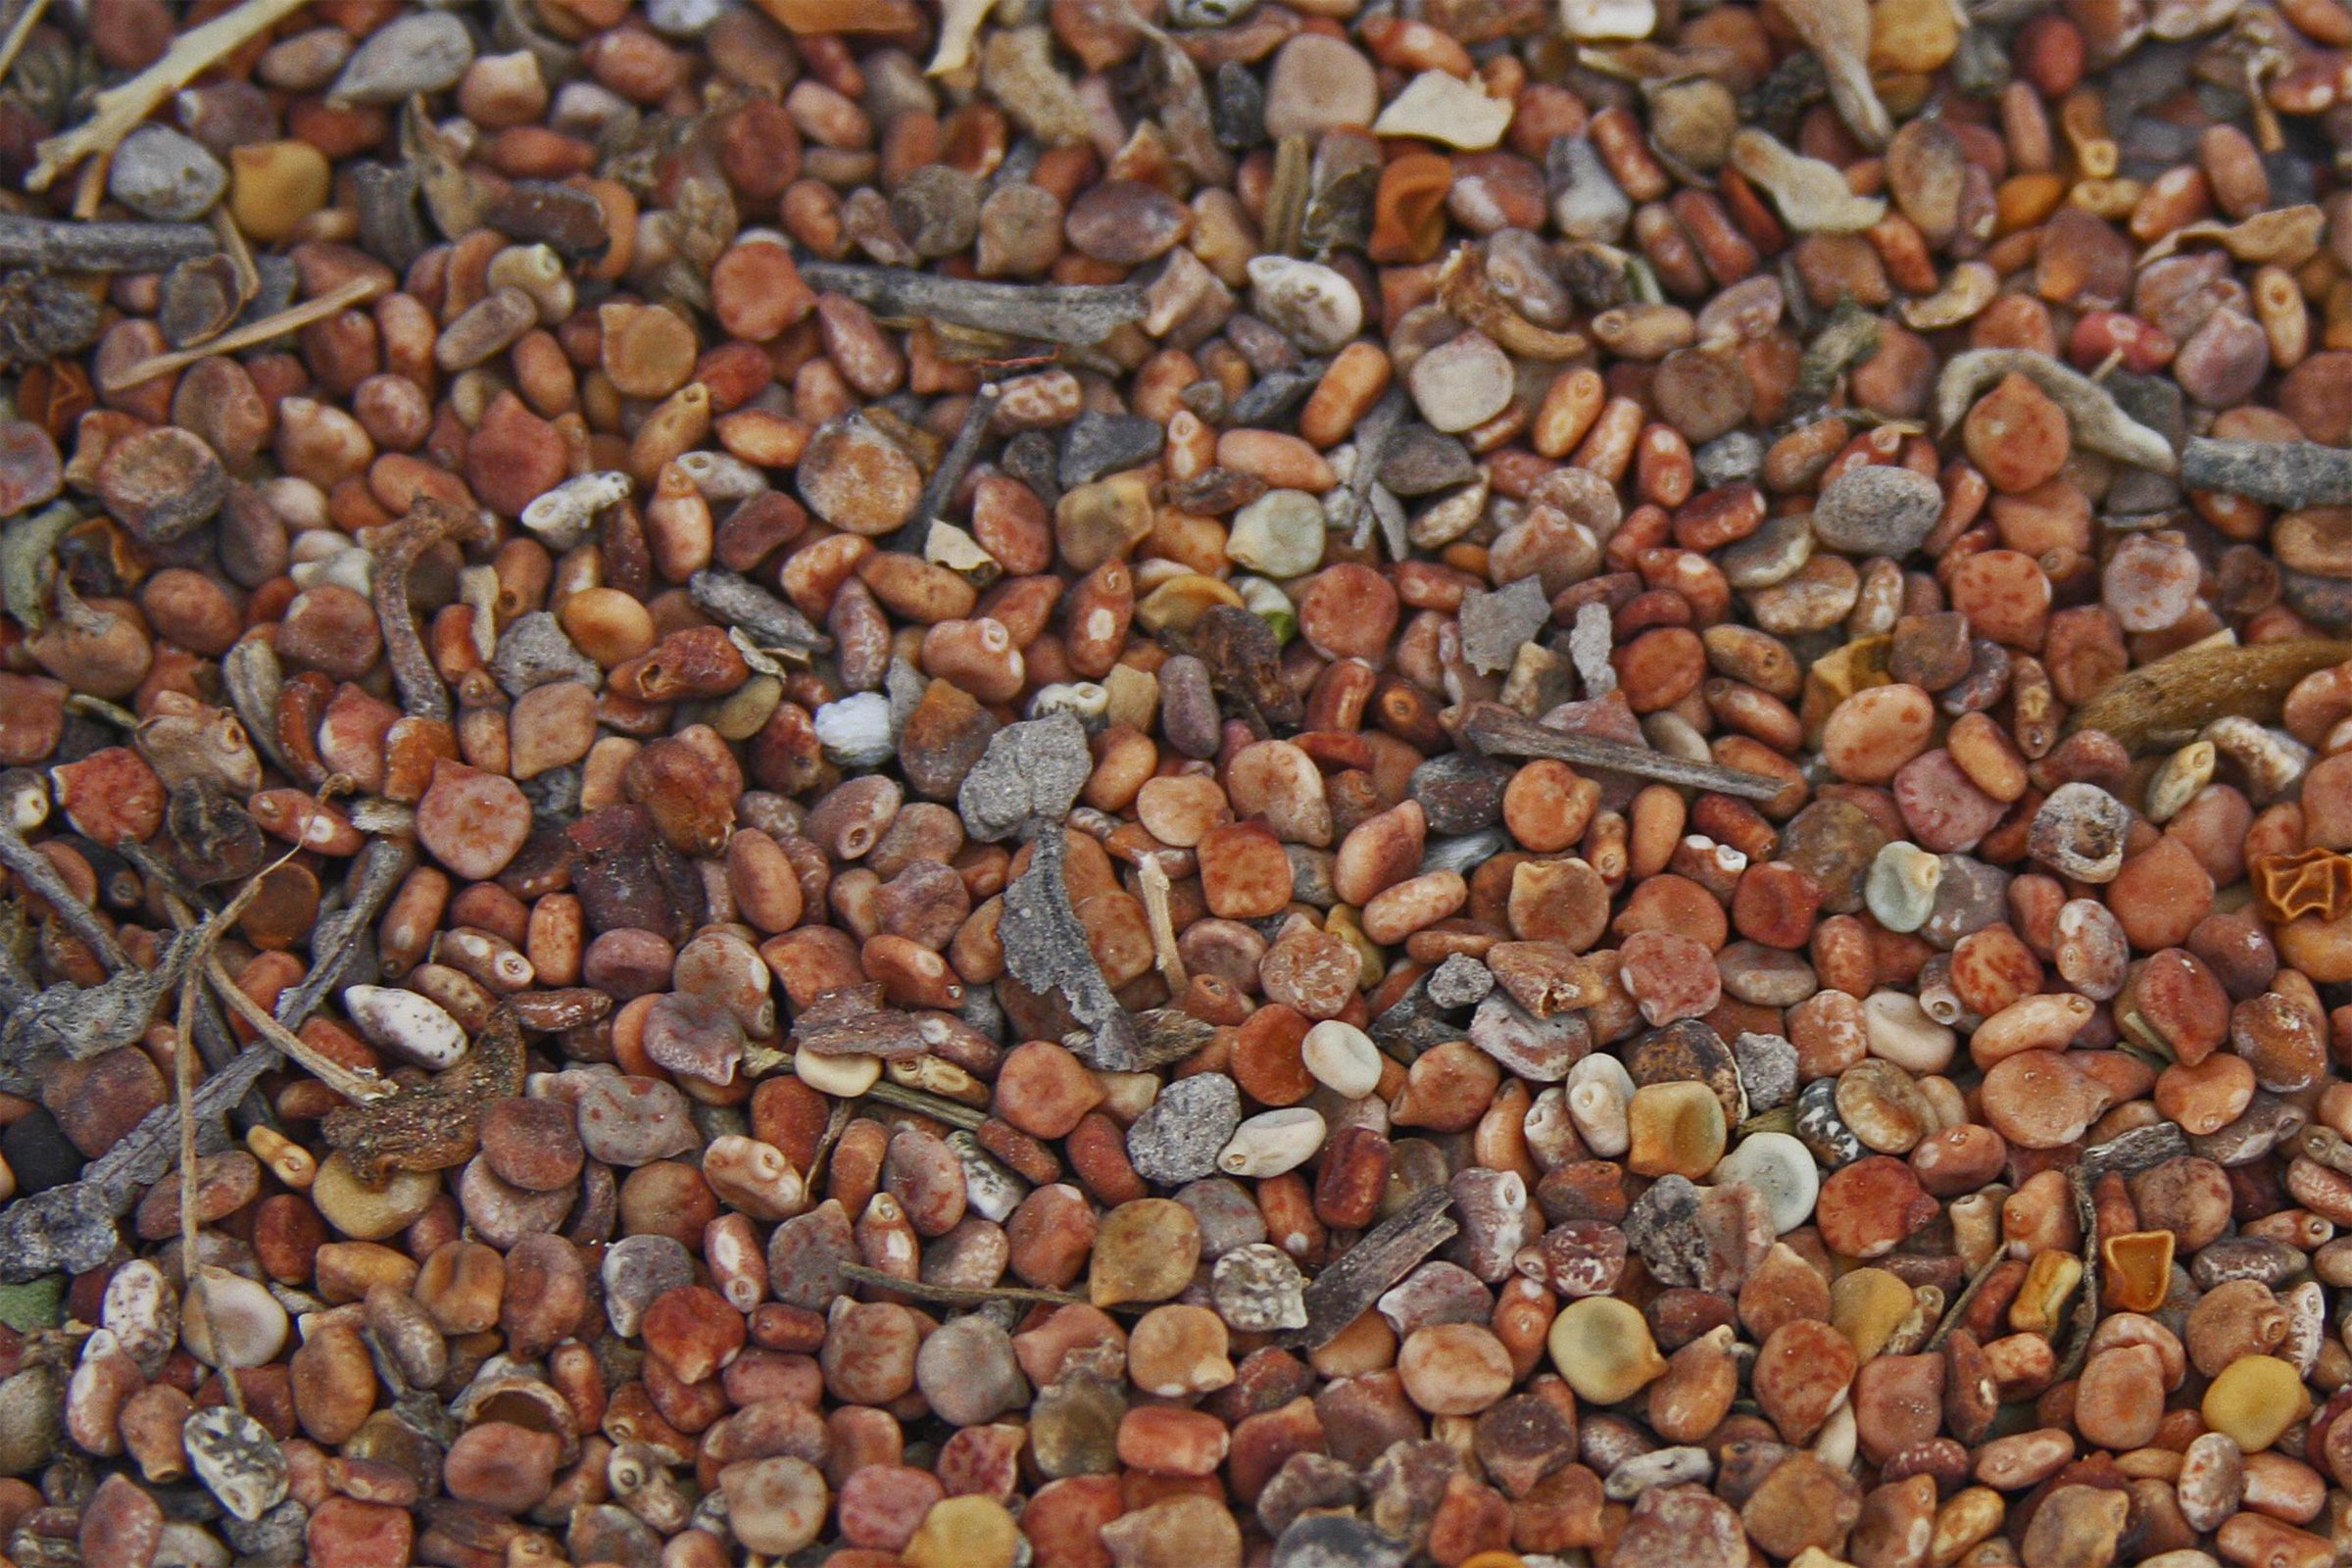 PLANTanswers: Plant Answers > Extraction and Scarification of Bluebonnet Seed2400 x 1600 jpeg 1406kB